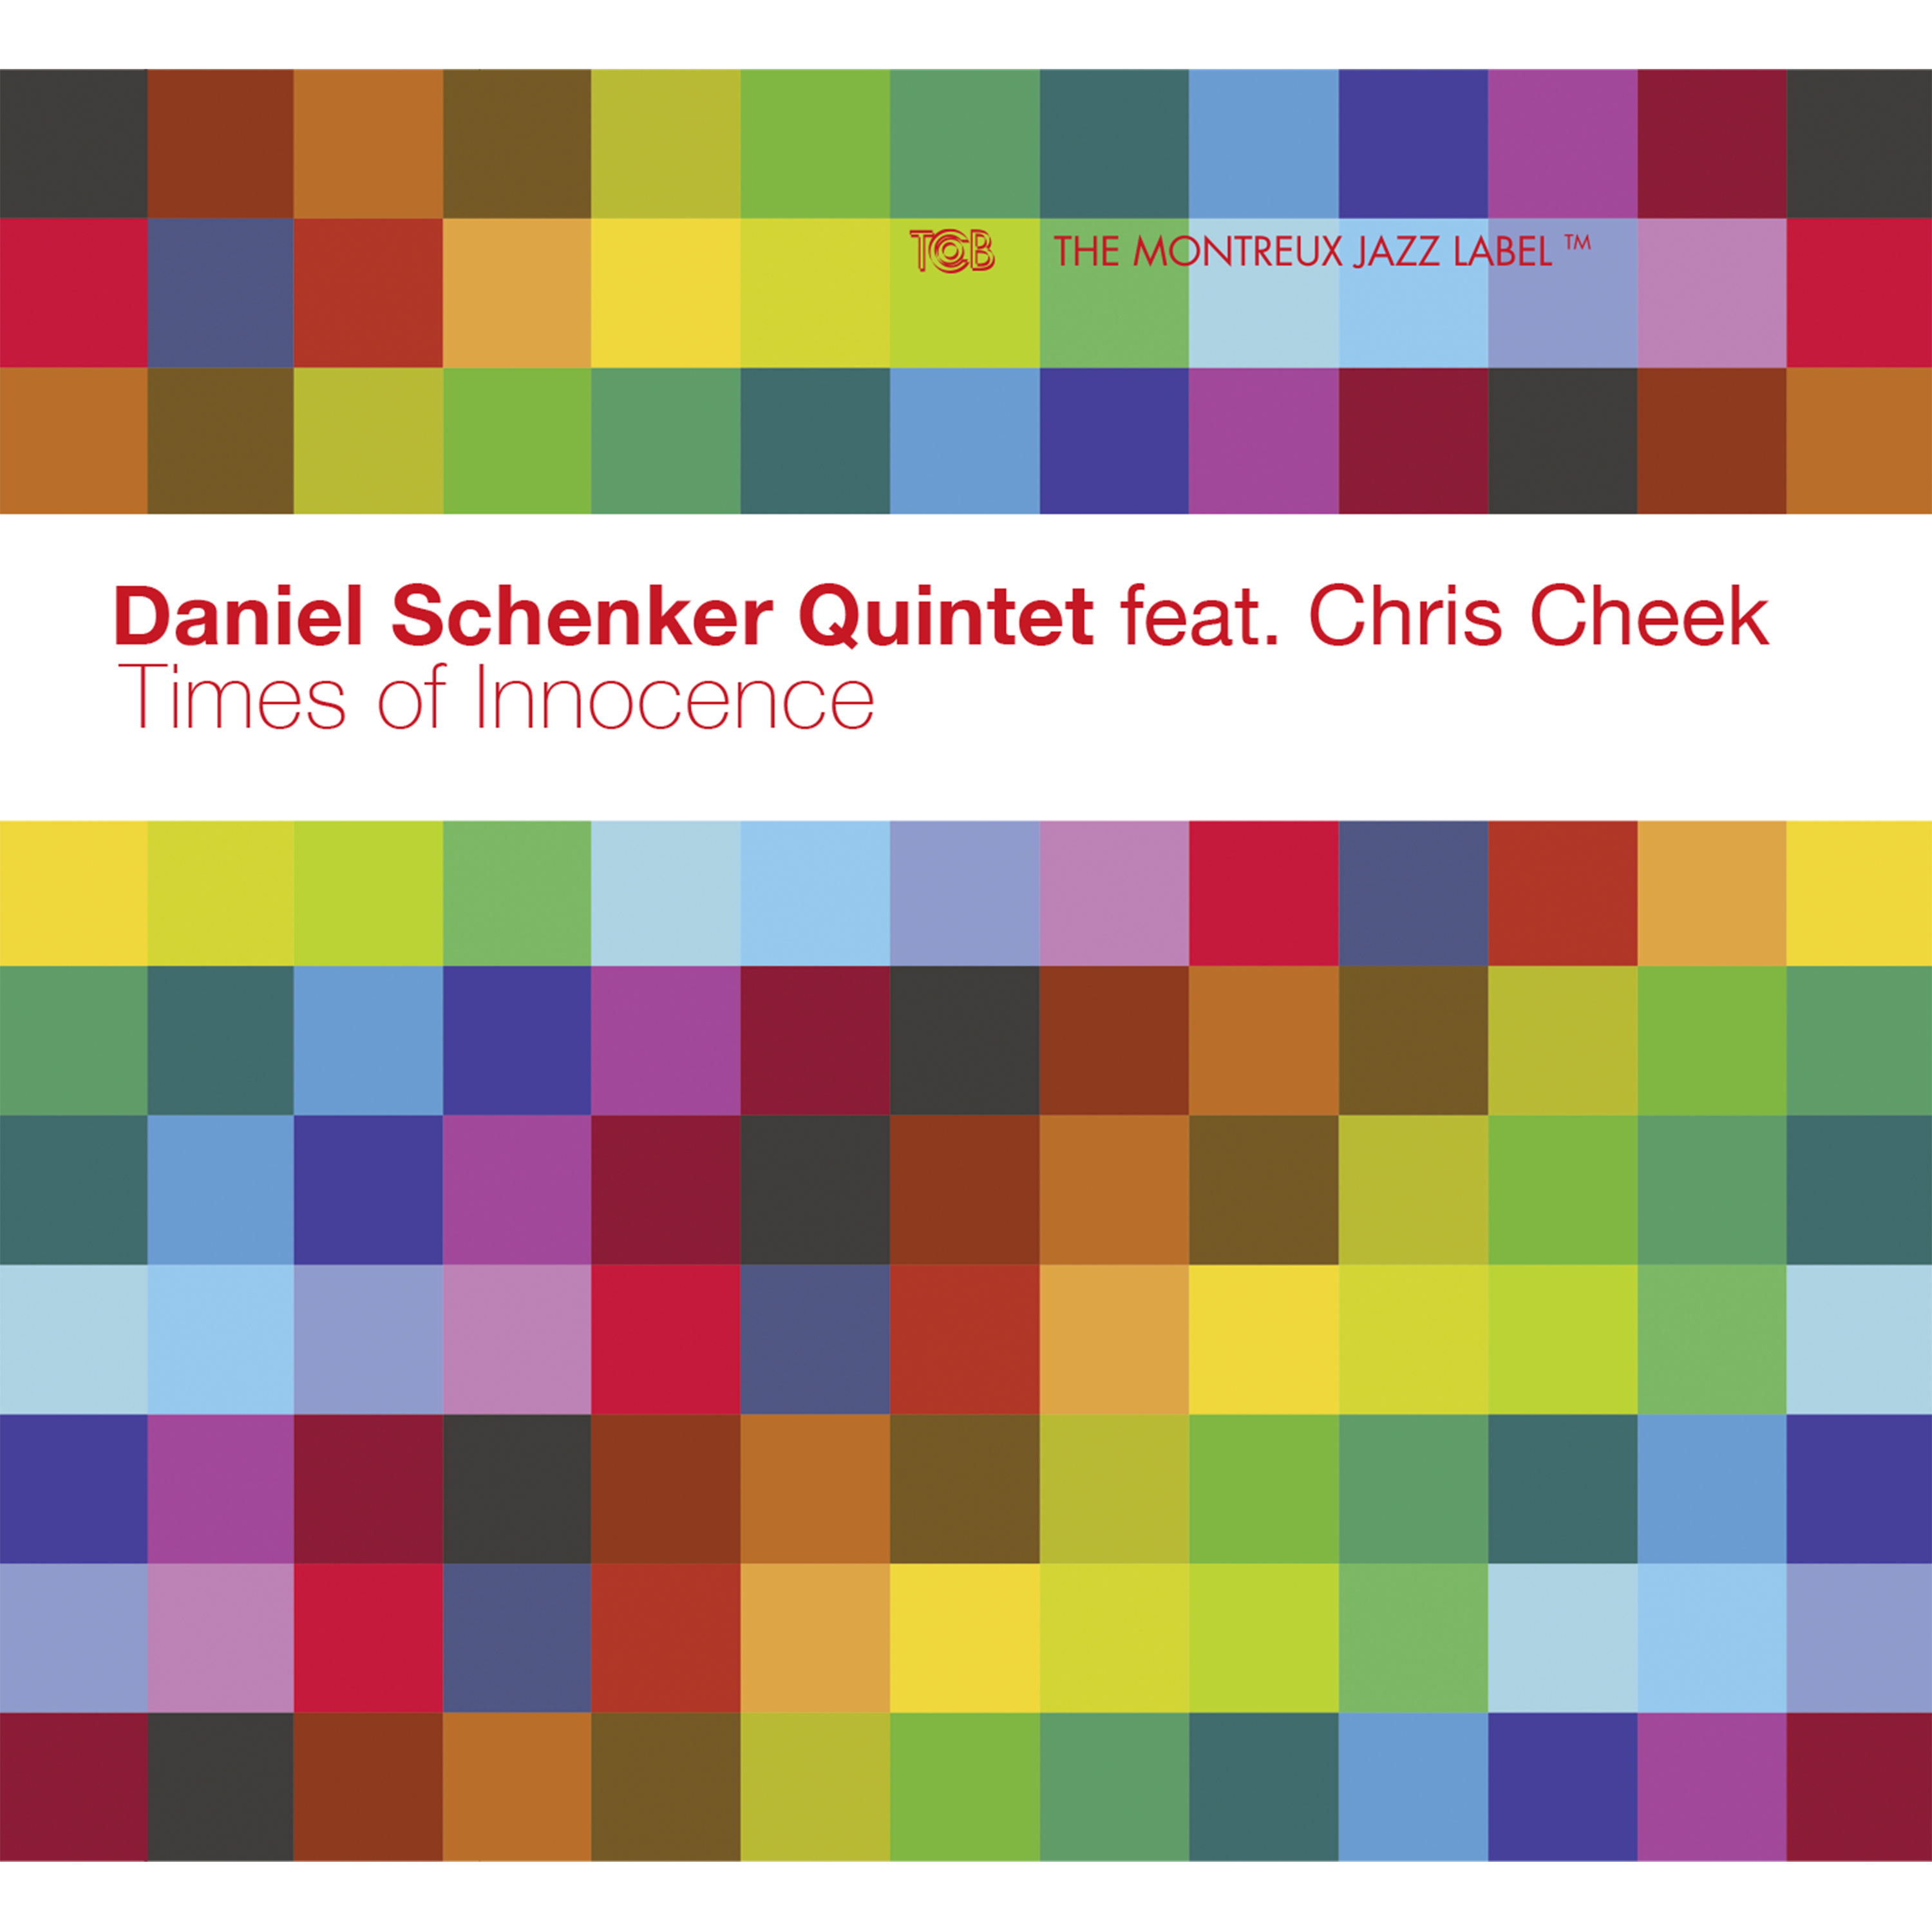 Times of Innocence - Daniel Schenker Quintet feat. Chris Cheek - Challenge Records International